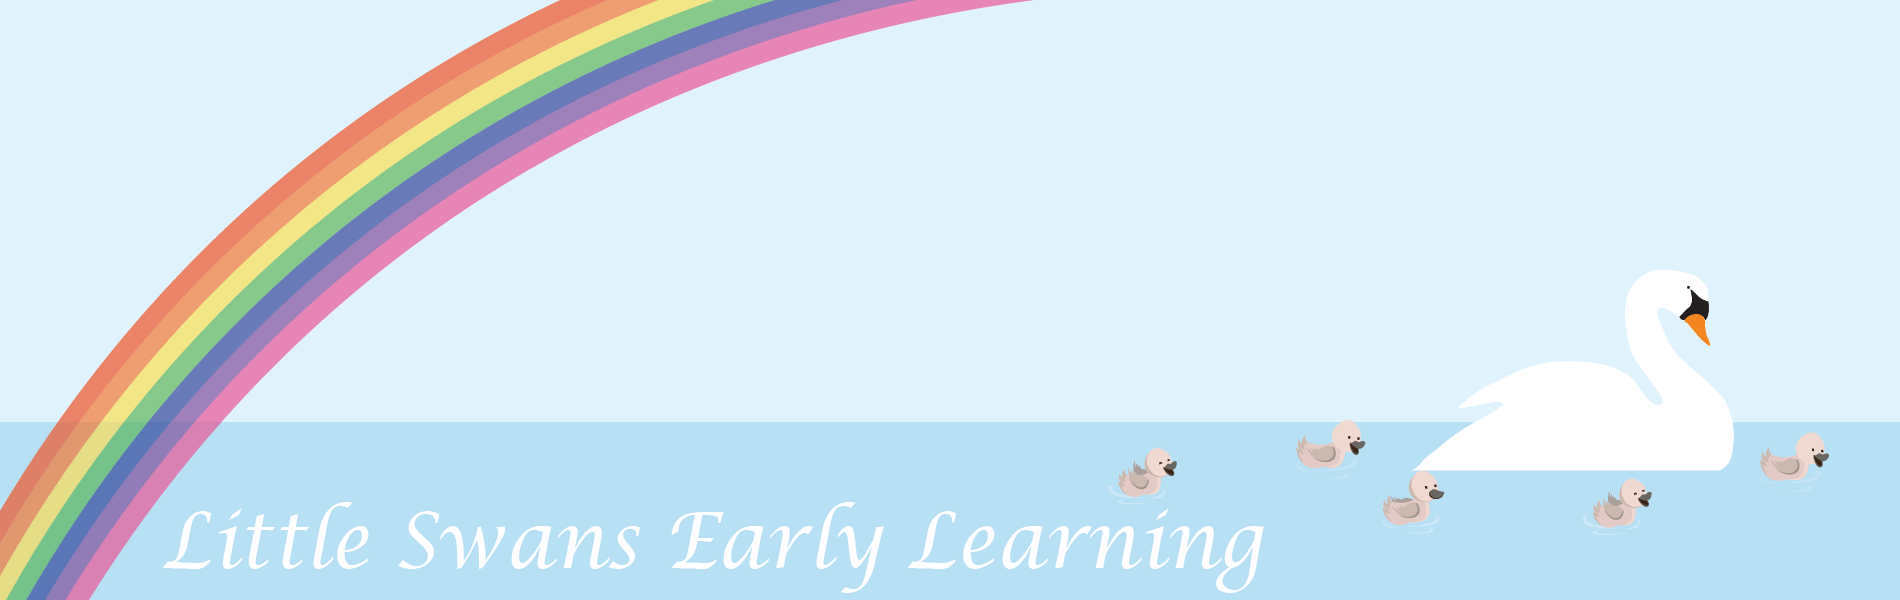 Little Swans Early Learning